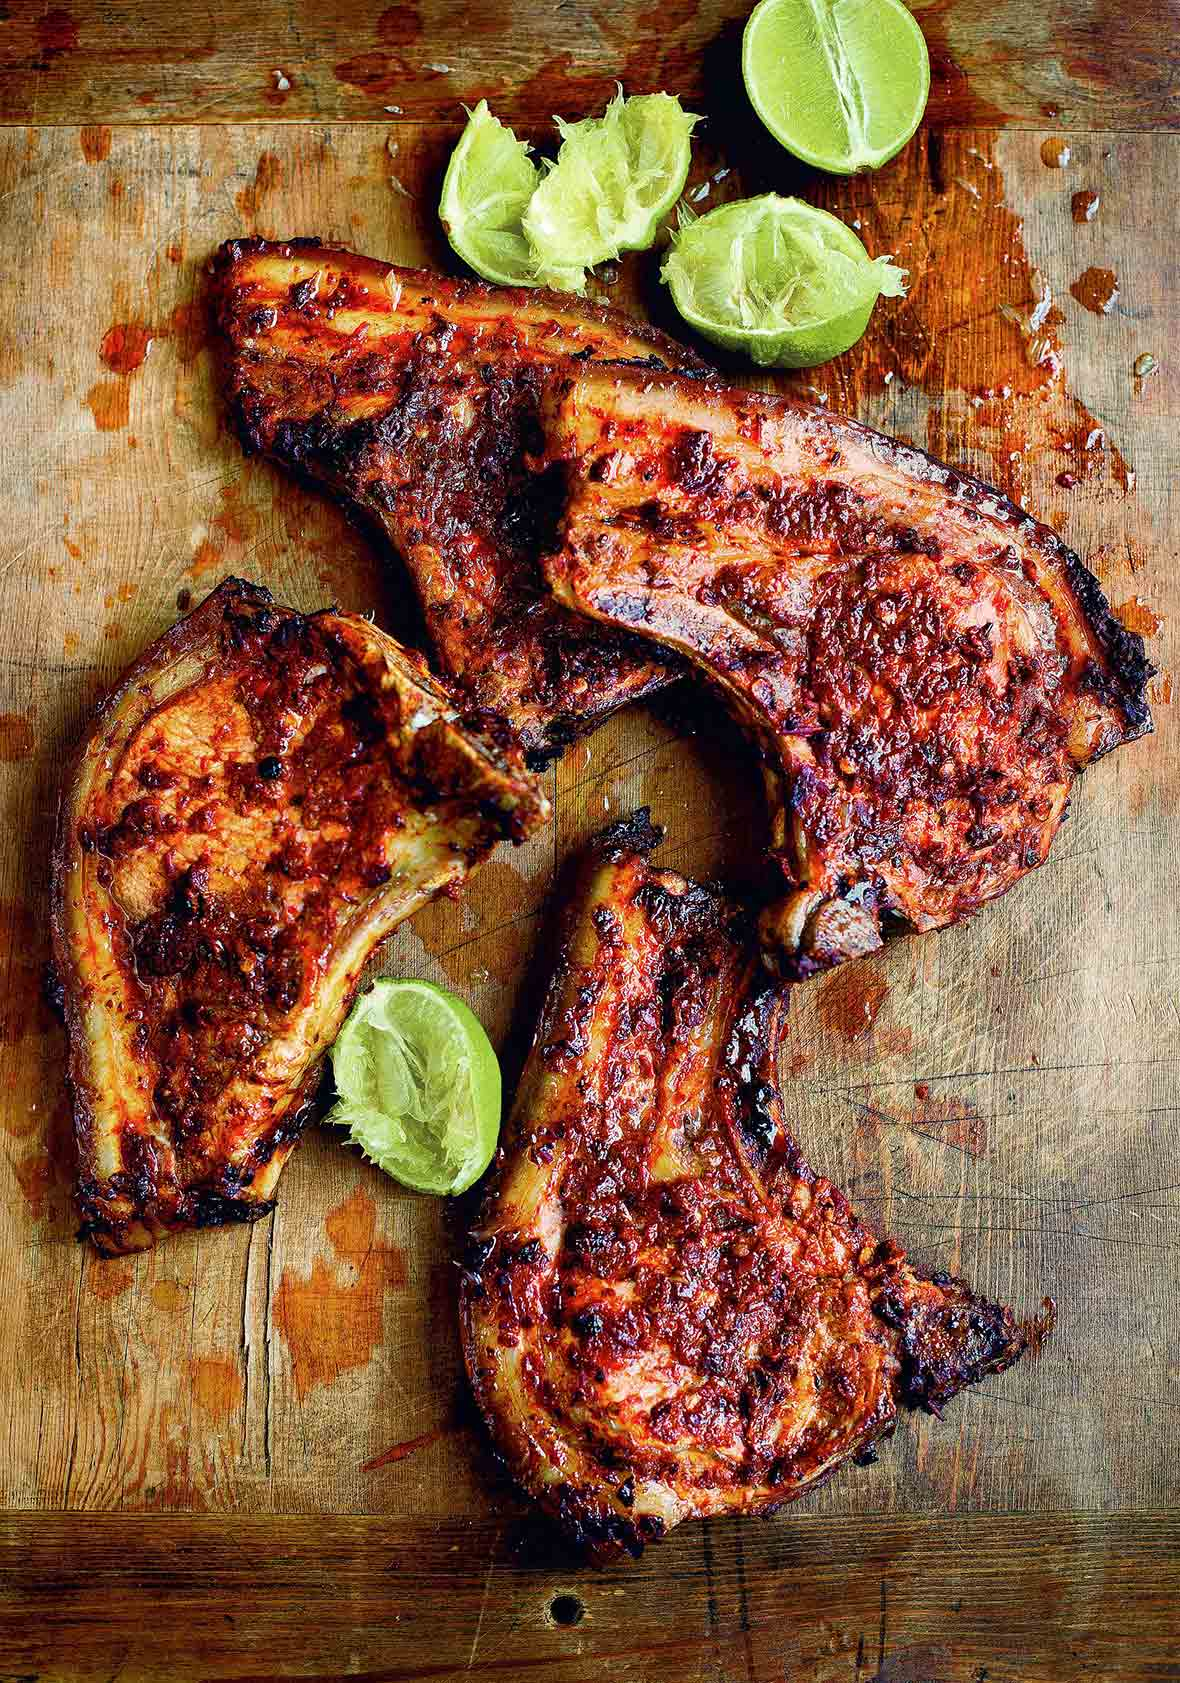 Four adobo marinated pork chops and several lime halves, some squeezed, on a wooden chopping block.